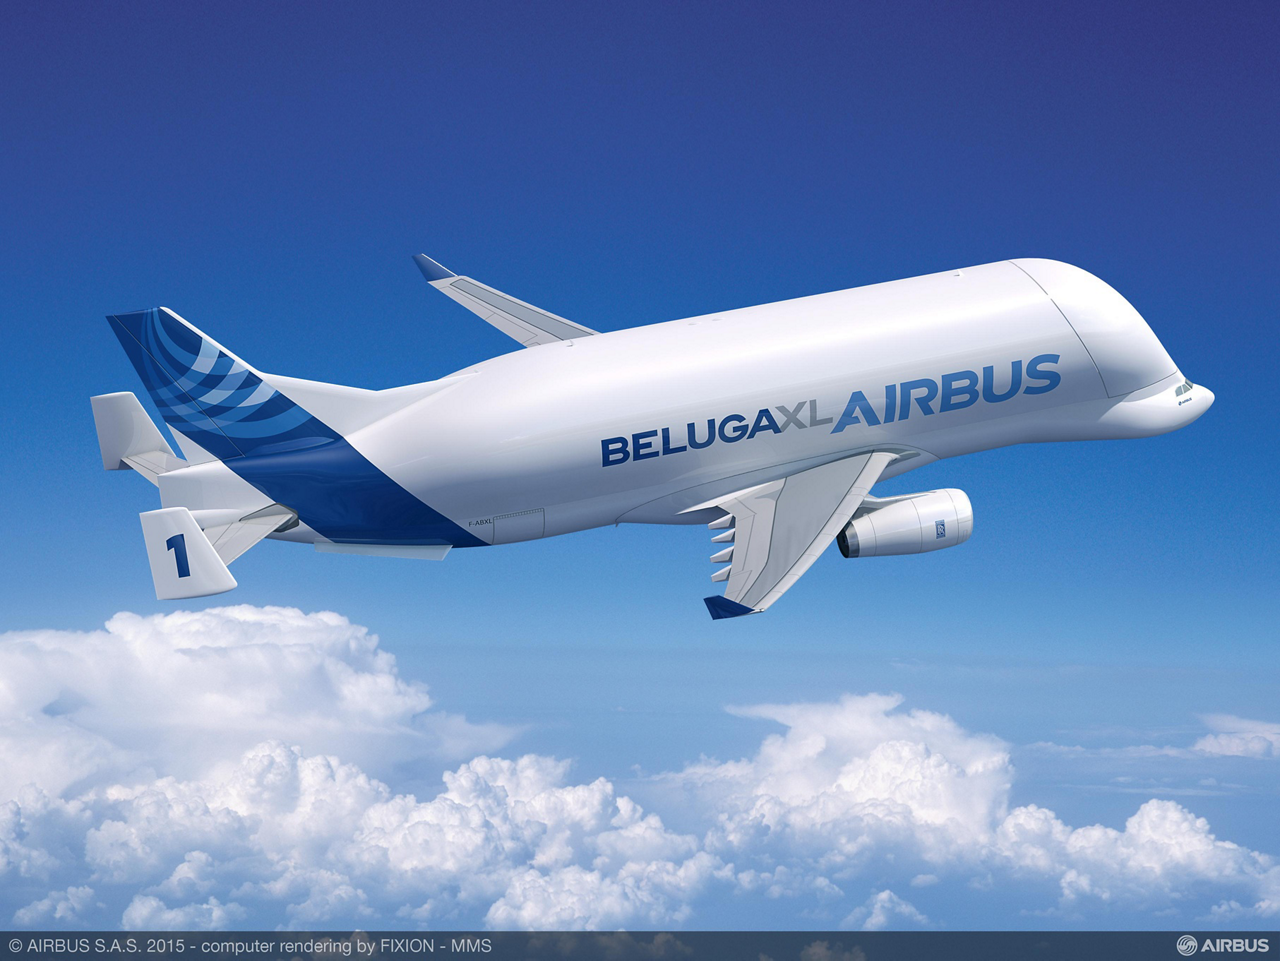 In early 2017, the first of Airbus' five new Beluga XL airlifters will begin taking shape. These transporter aircraft are based on the Freighter version of Airbus' A330-200 jetliner